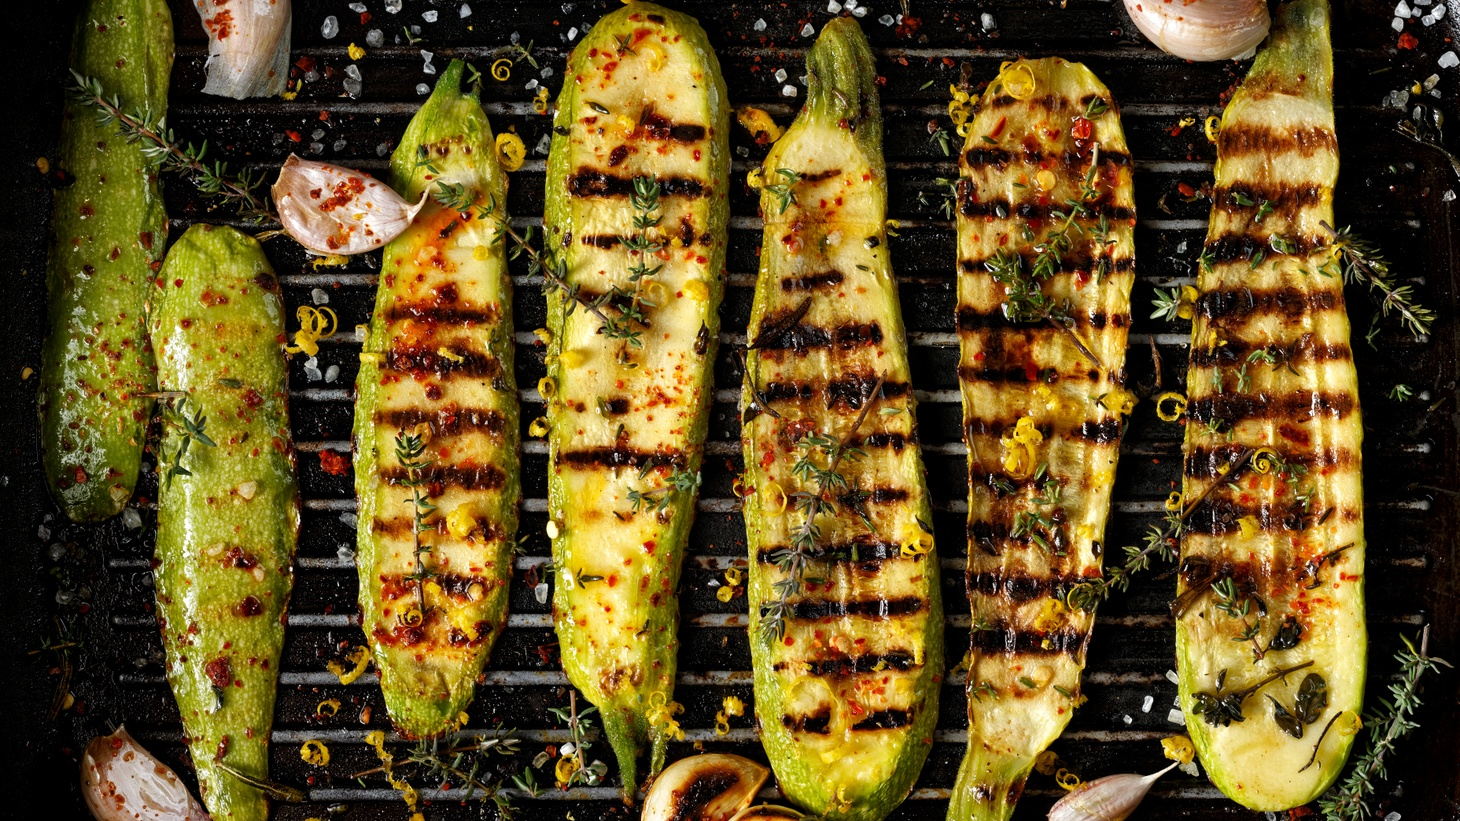 One way to make zucchini: slice thickly lengthwise for grilling.